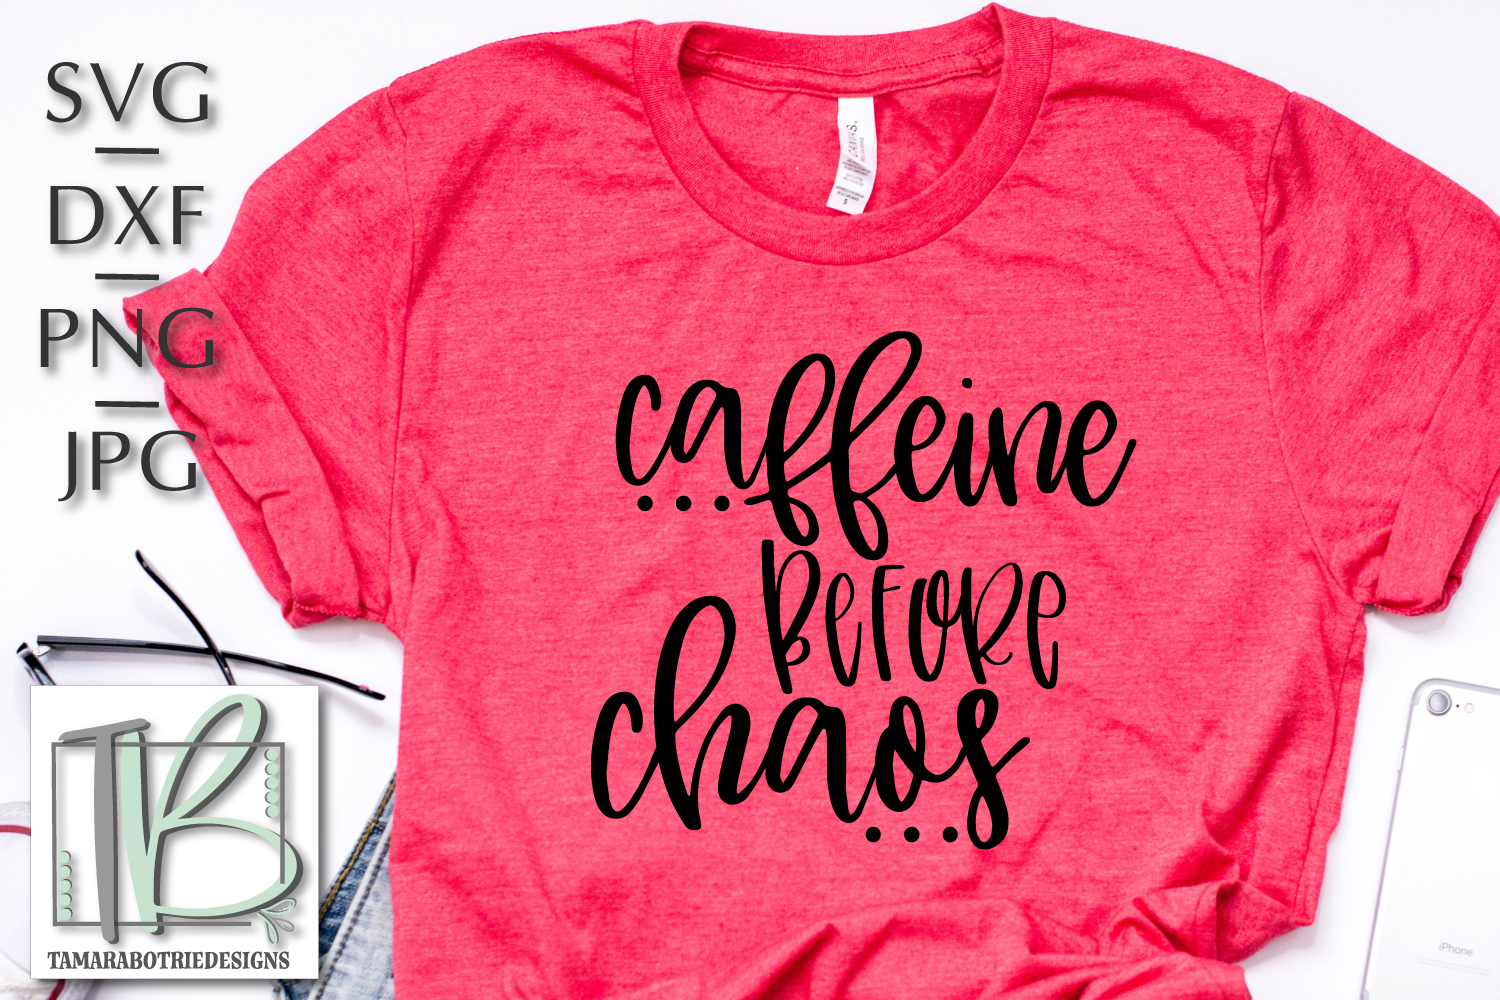 Caffeine Before Chaos SVG example image 1